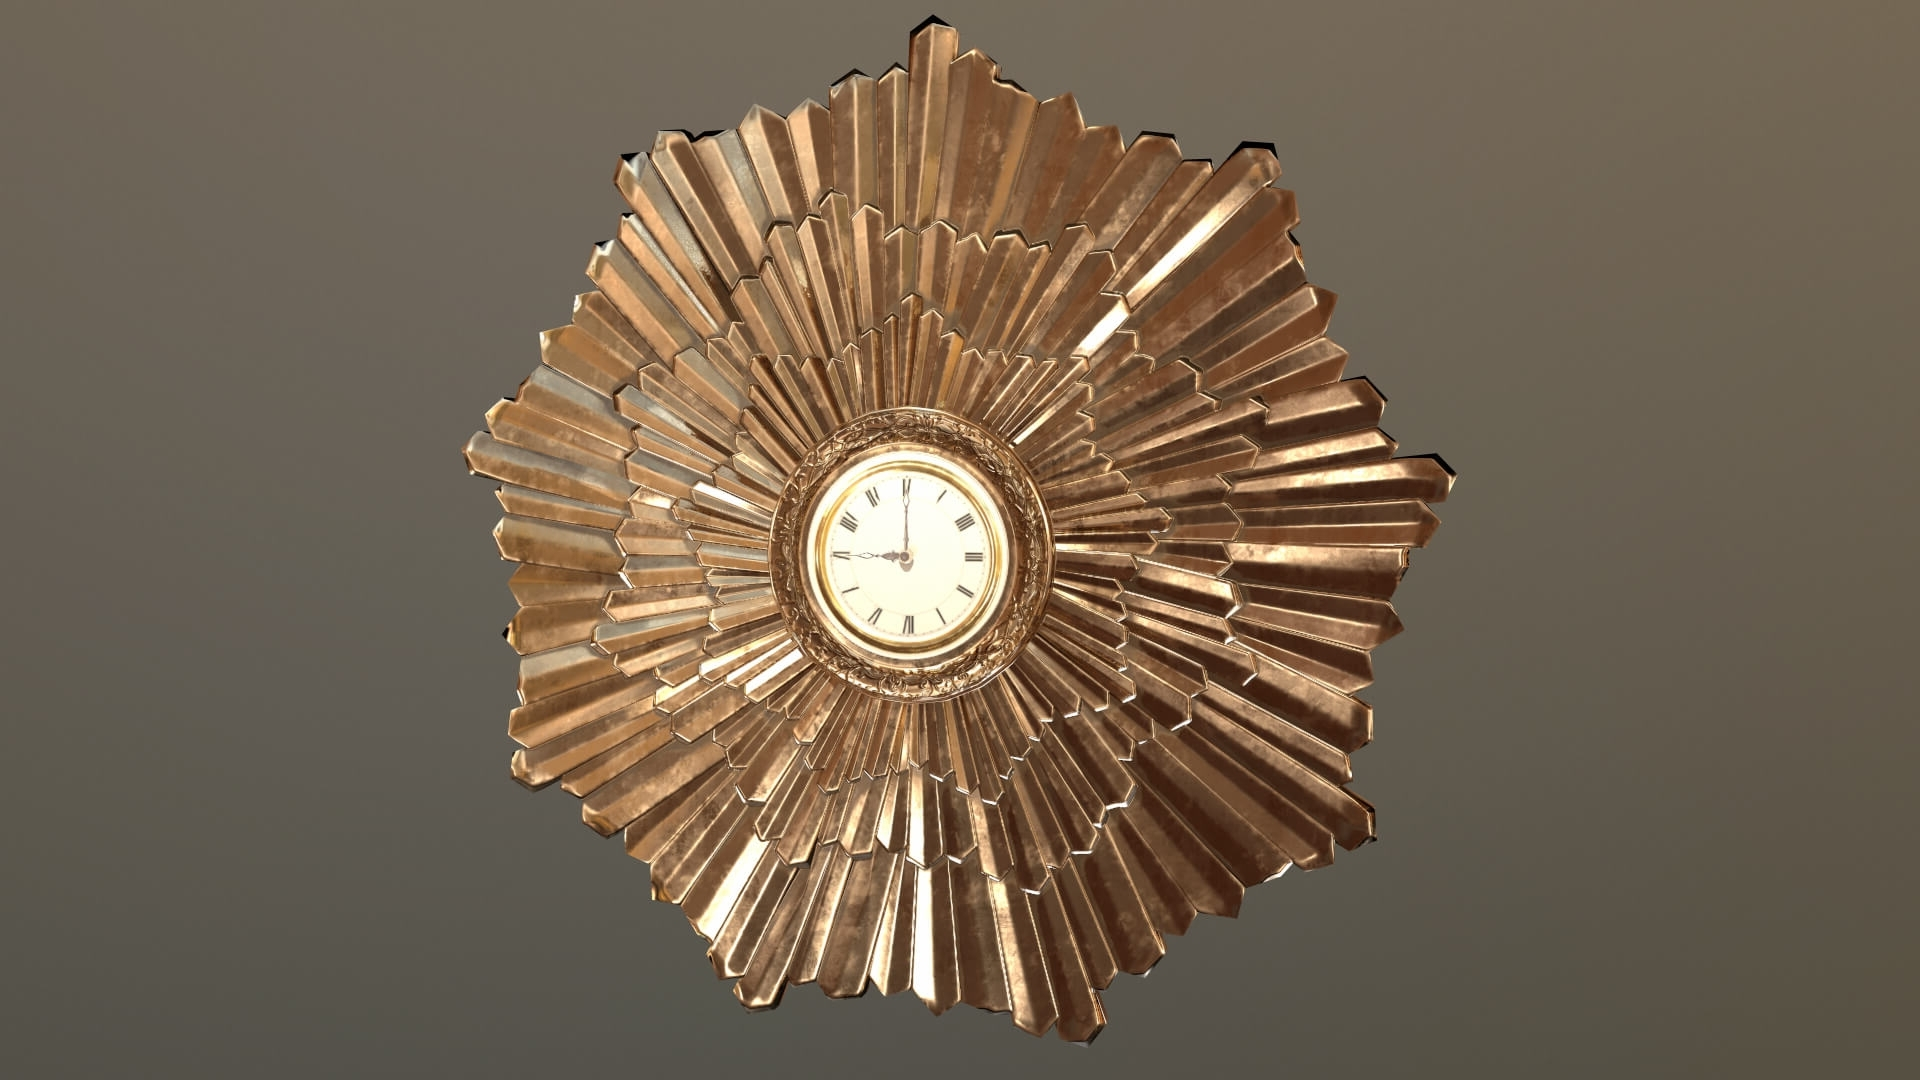 Art Deco Wall Clock Throughout Best And Newest Art Deco Wall Clock 3D Model (View 19 of 20)